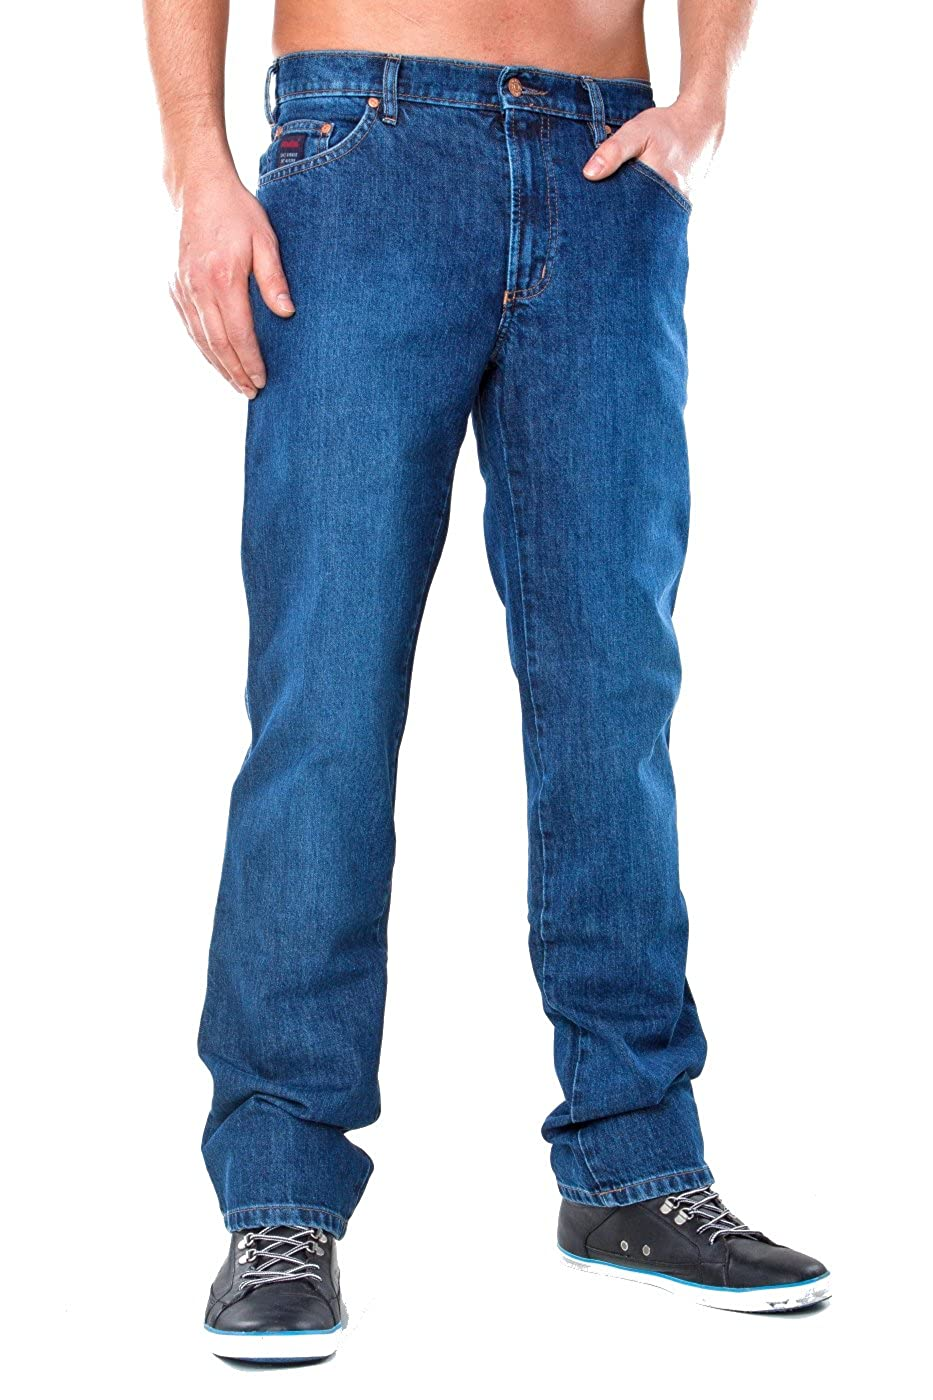 Revils Jeans Hose 302 Classic Stretch, V-24 2, indigo stone washed